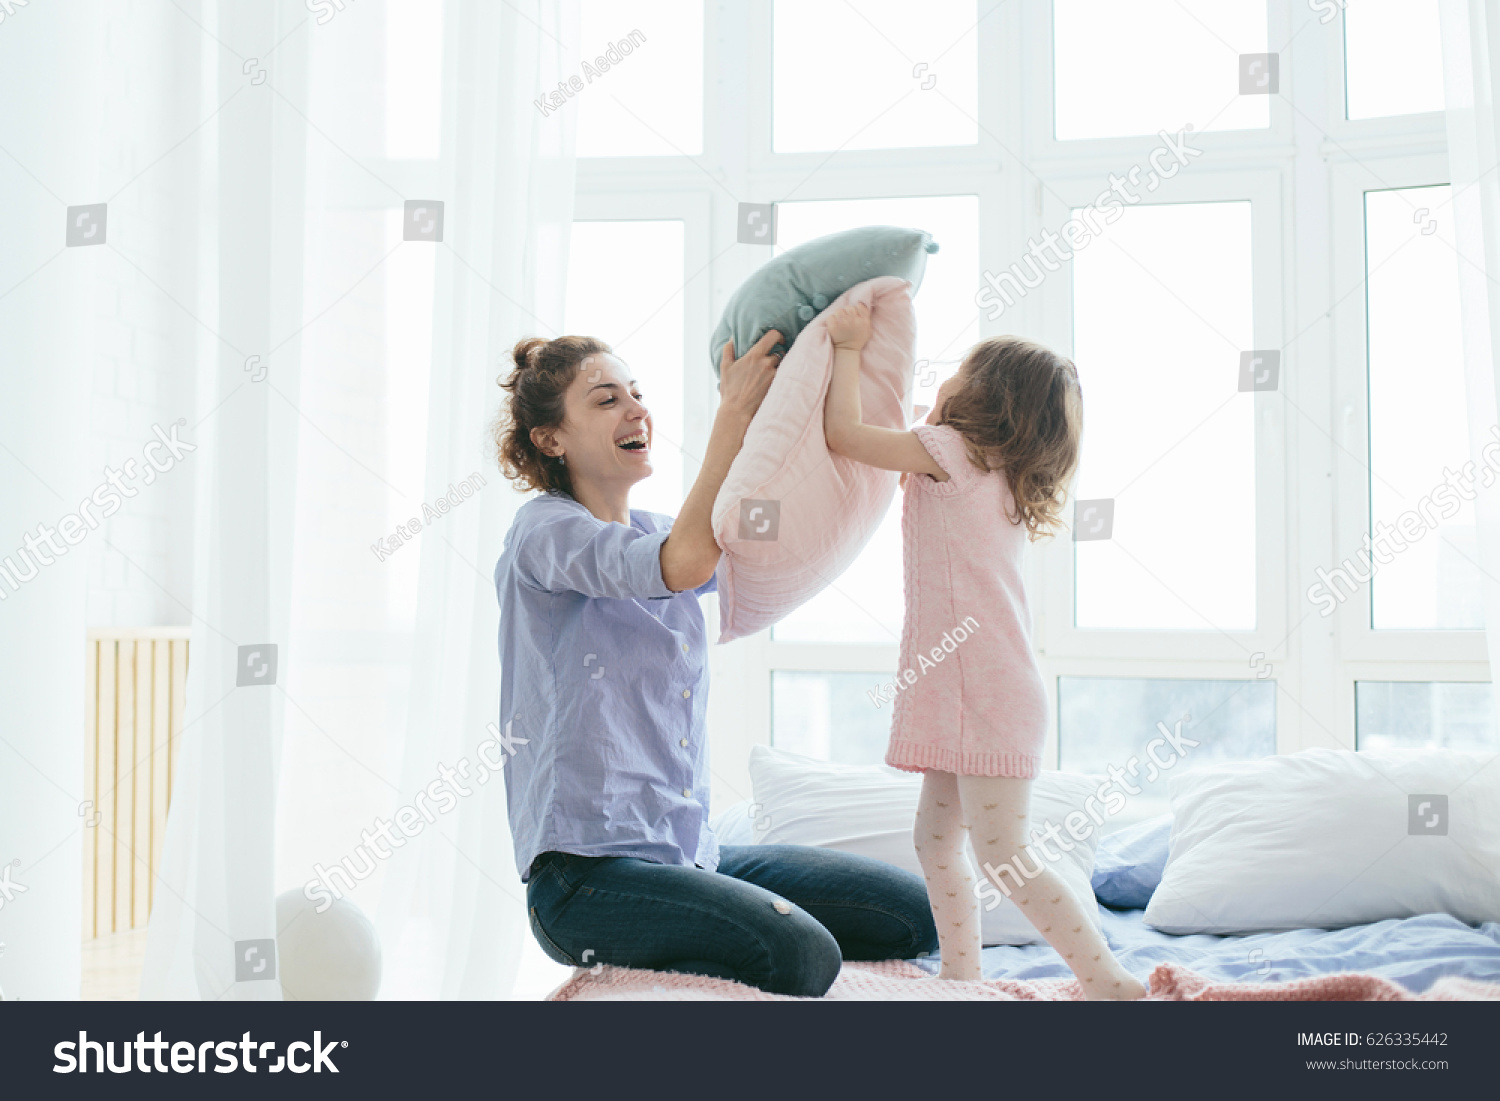 Young mother and her little daughter playing with cushions on bed. Funny pillow fight. Soft pastel colors, pink and blue. Selective focus. Play together and enjoy the moment! Family time on weekend.  #626335442